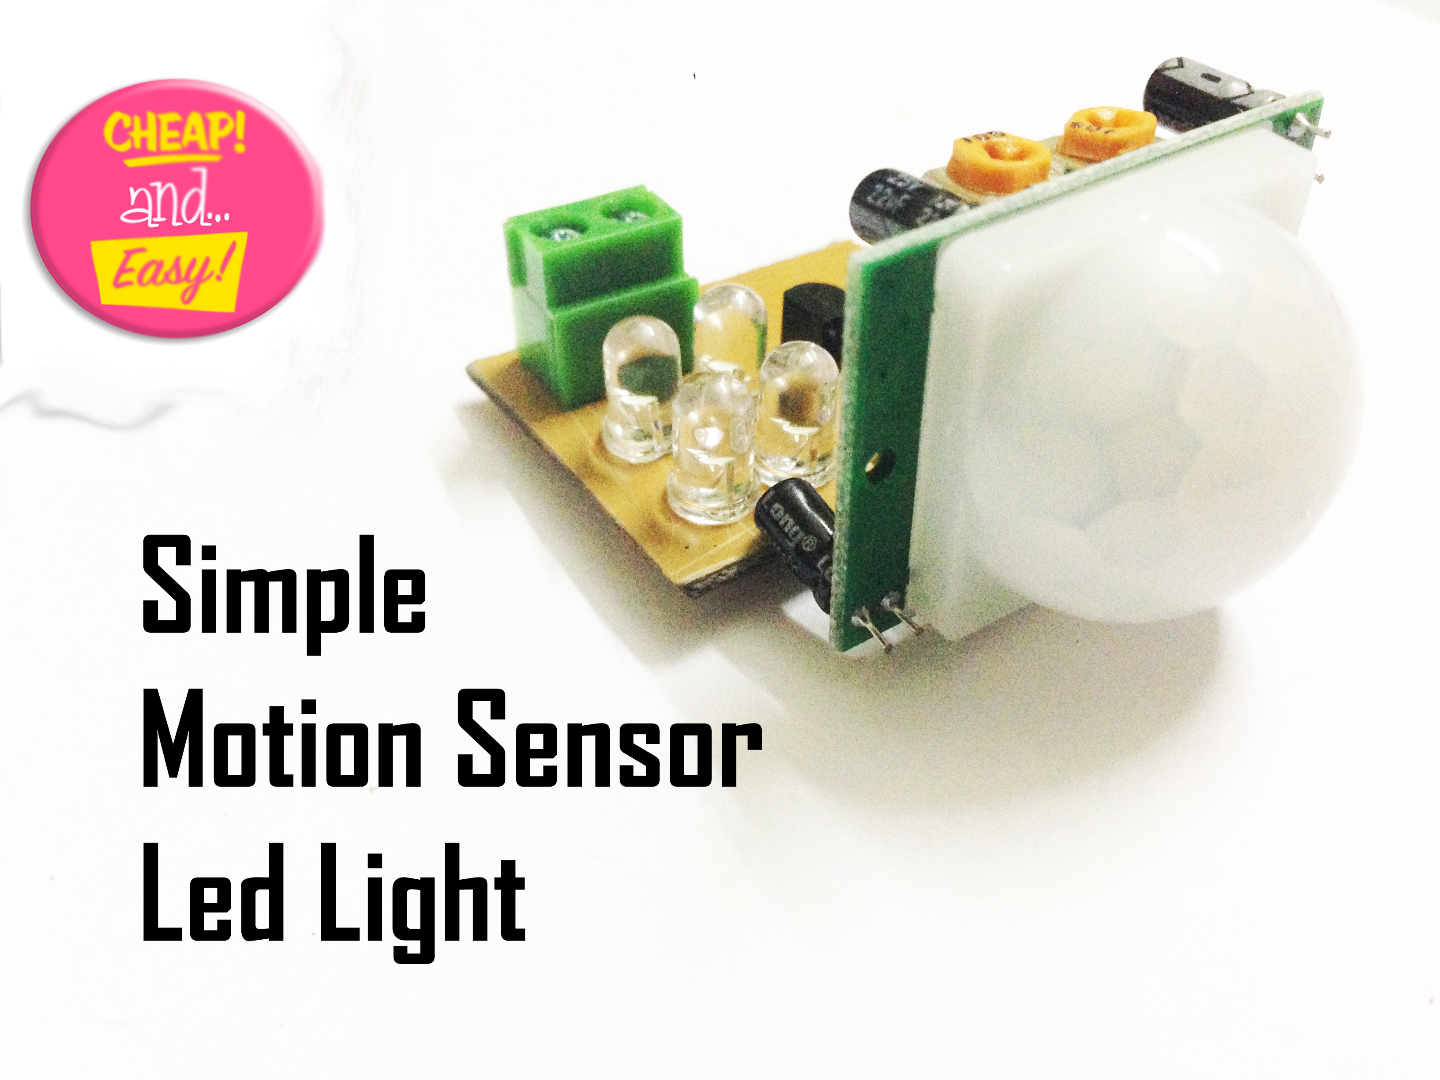 Make An Simple Motion Sensor Light Pir 13 Steps With Pictures Fan Night Bathroom Wiring Diagram Free Download